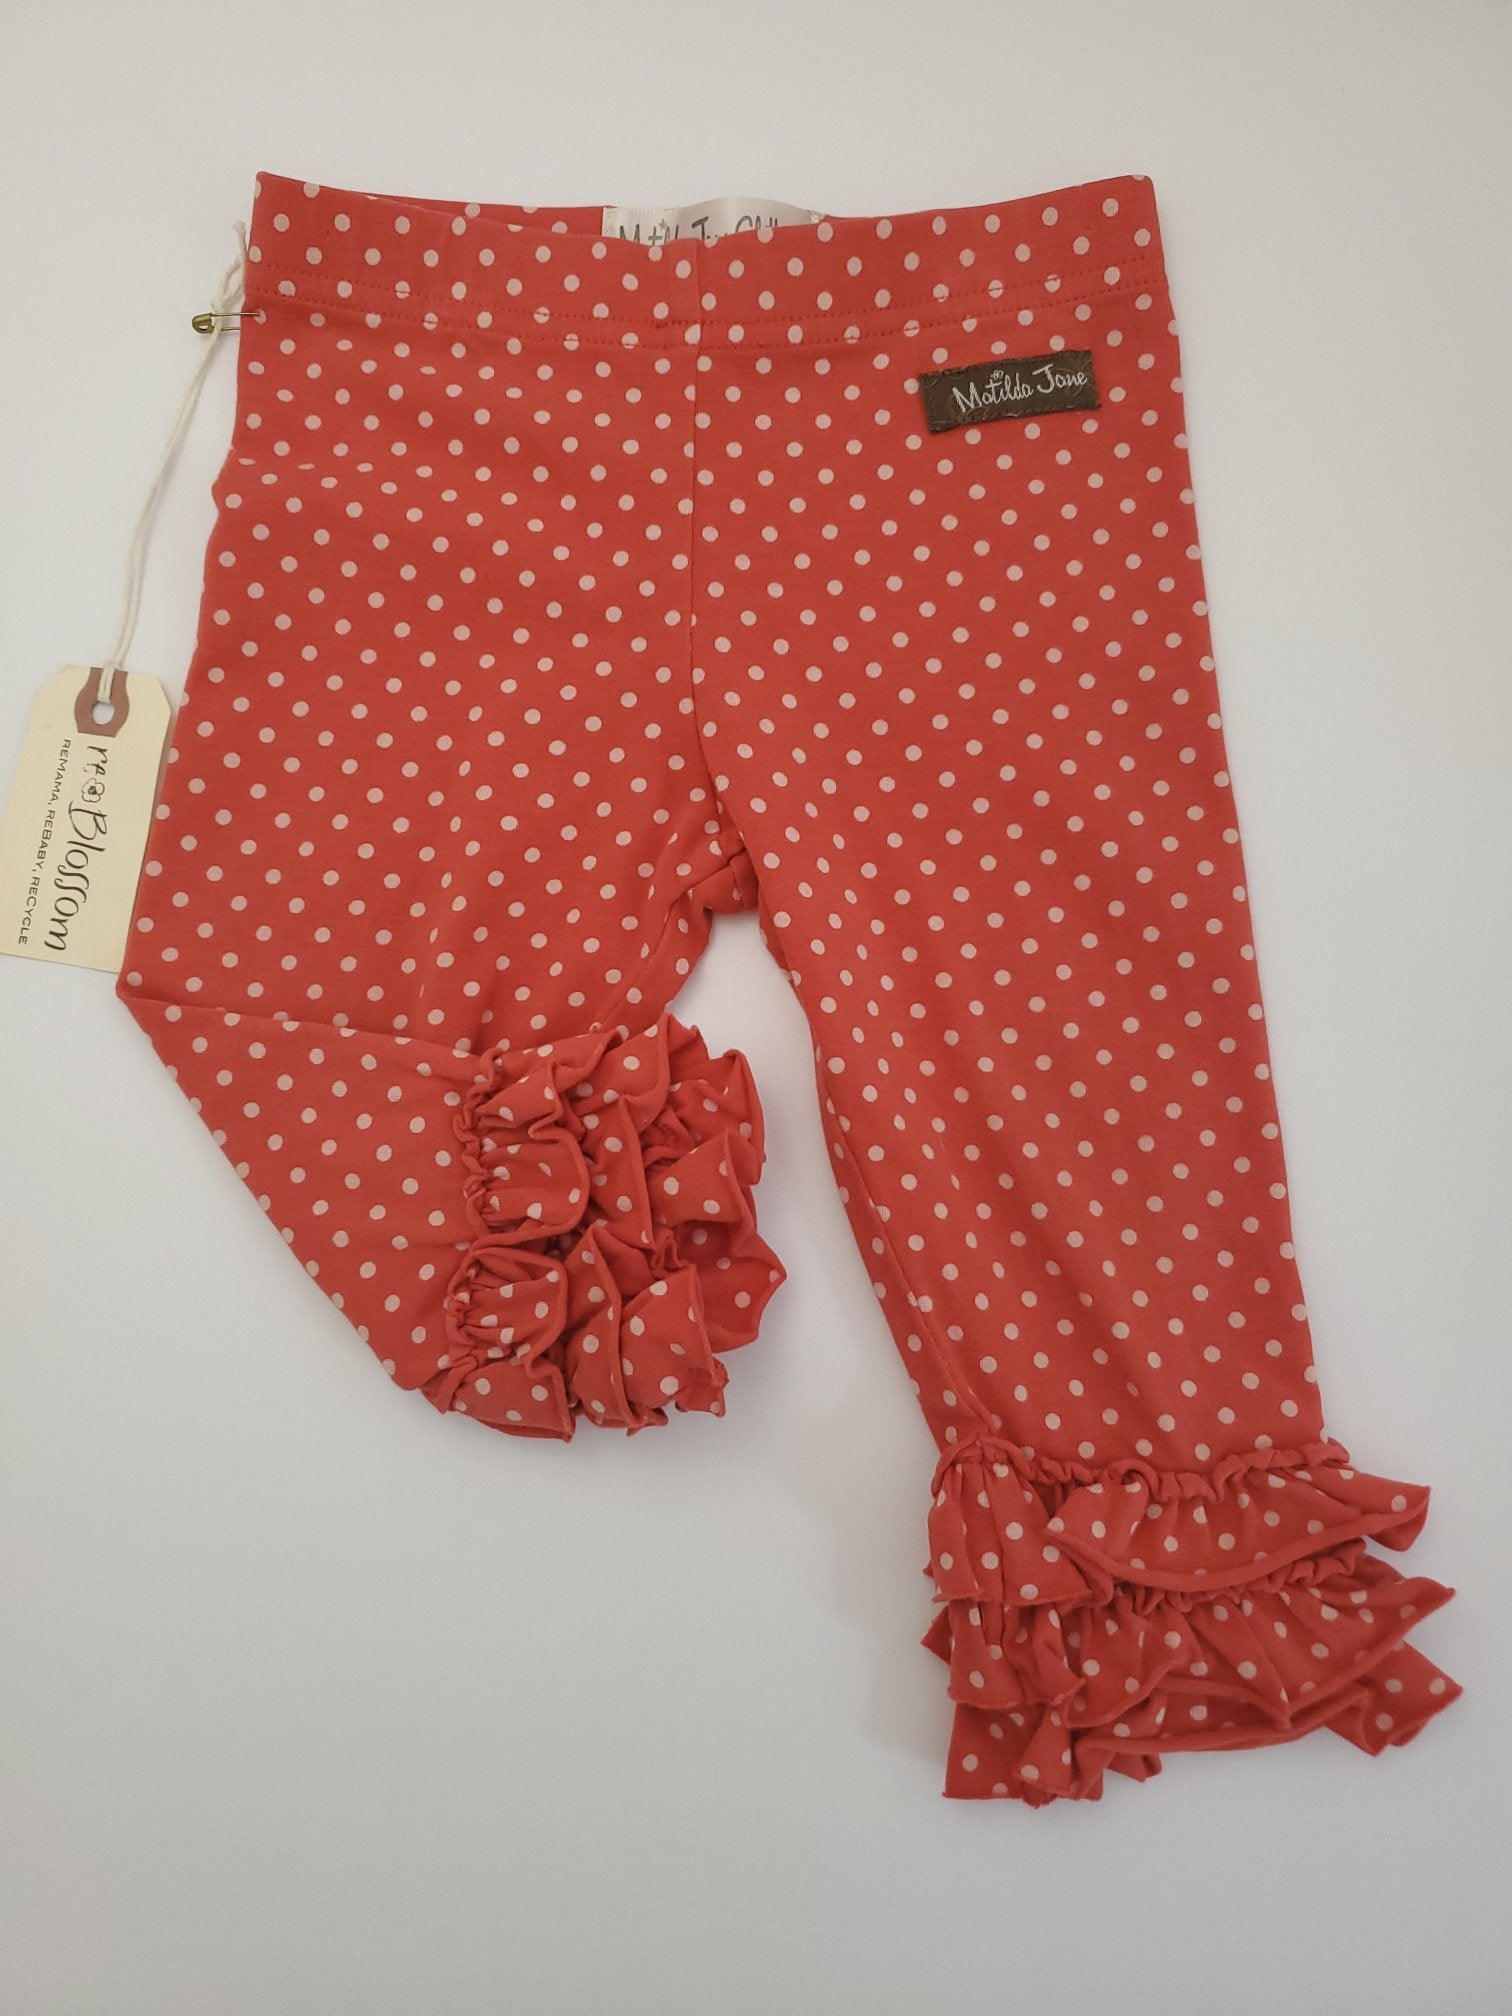 Resale 12m Matilda Jane Ruffle Legging - Coral / White Polka Dot